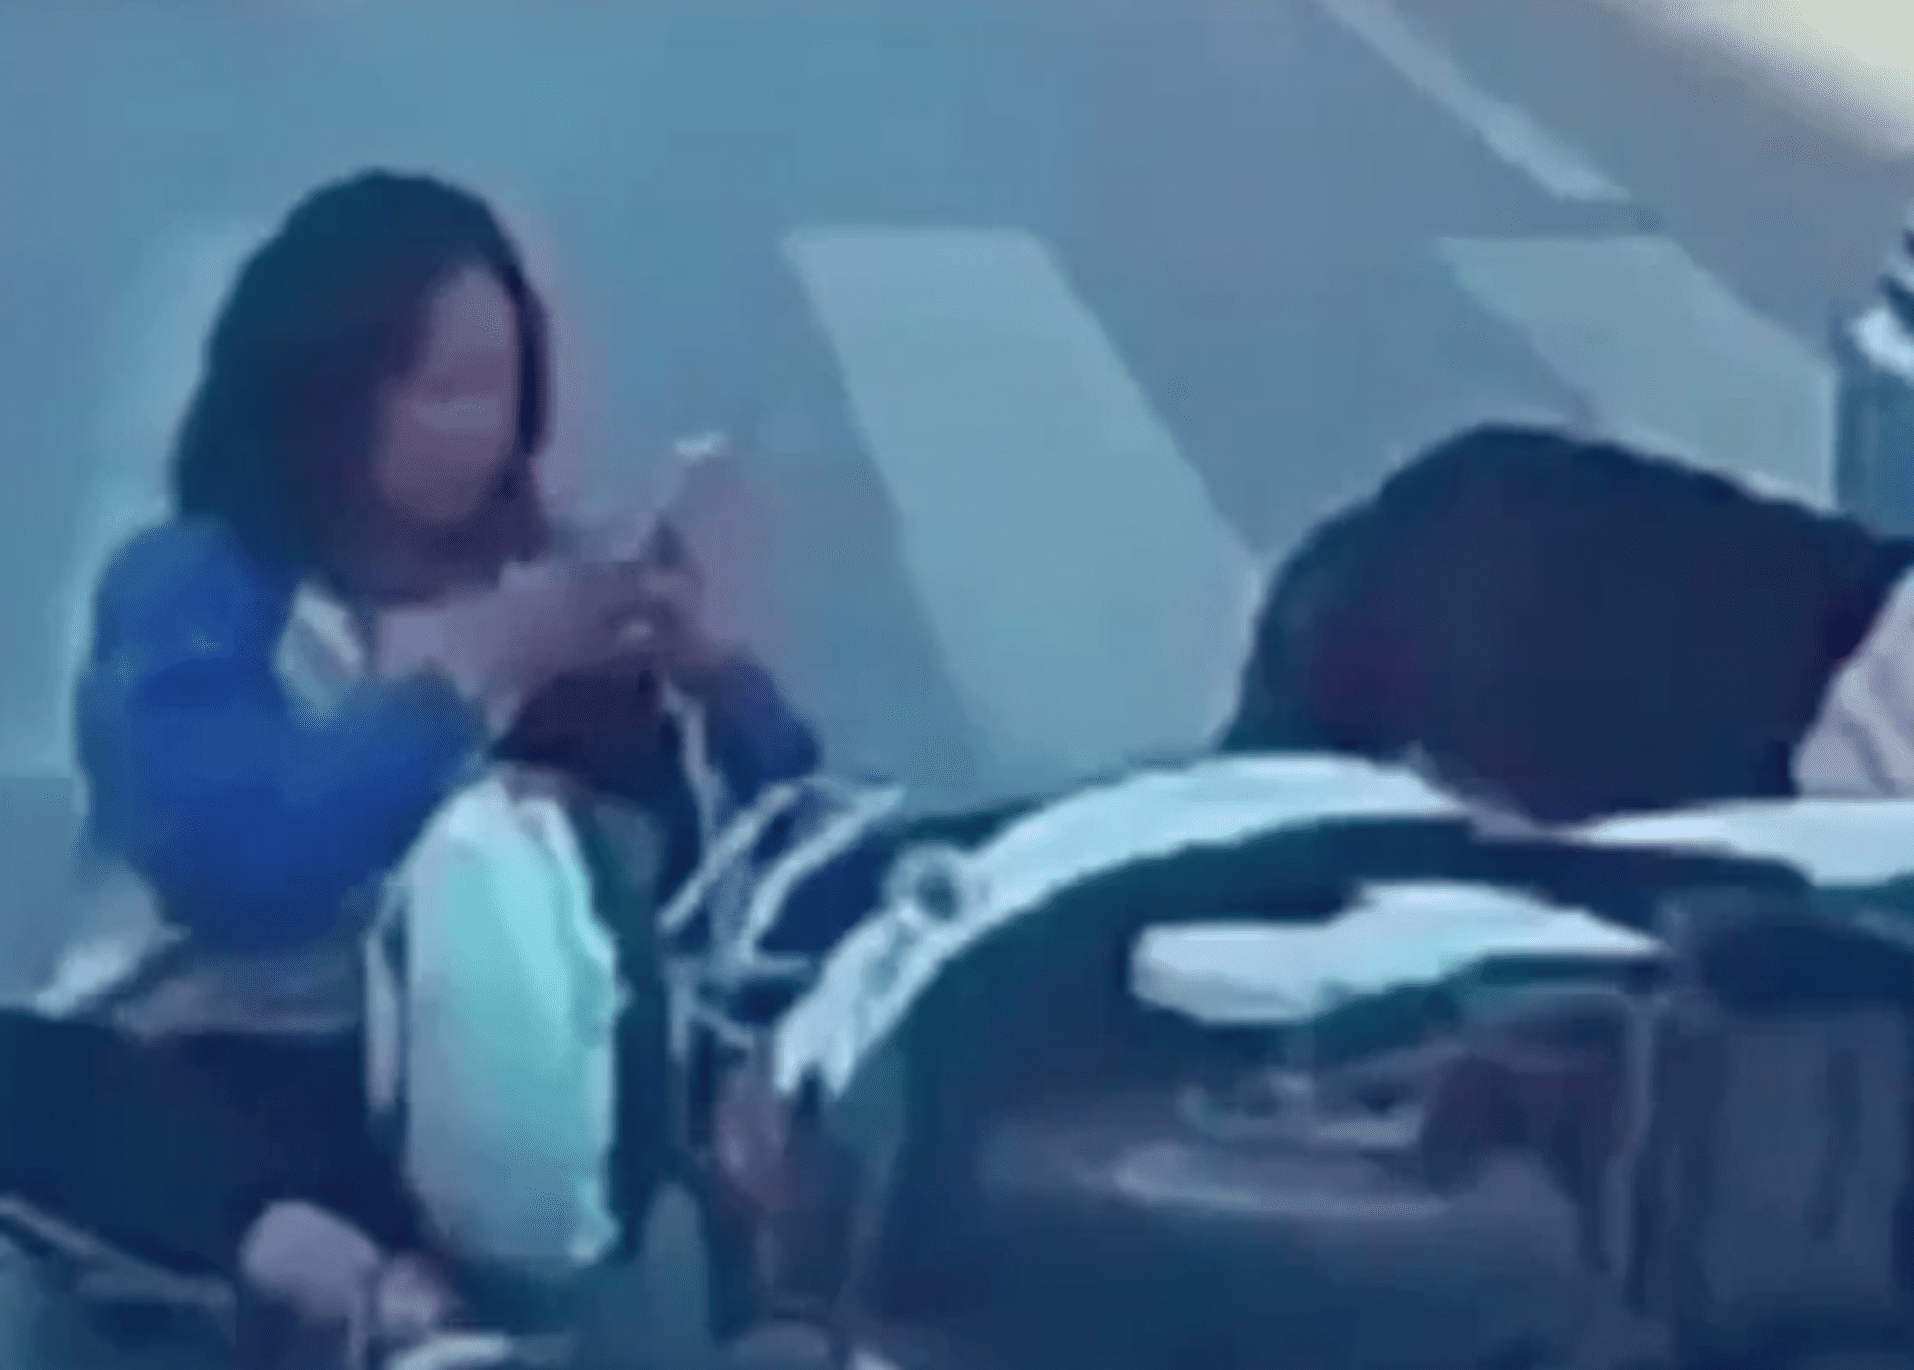 Woman texts in the middle of an accident scene   Photo: Reddit/Whatcouldgowrong